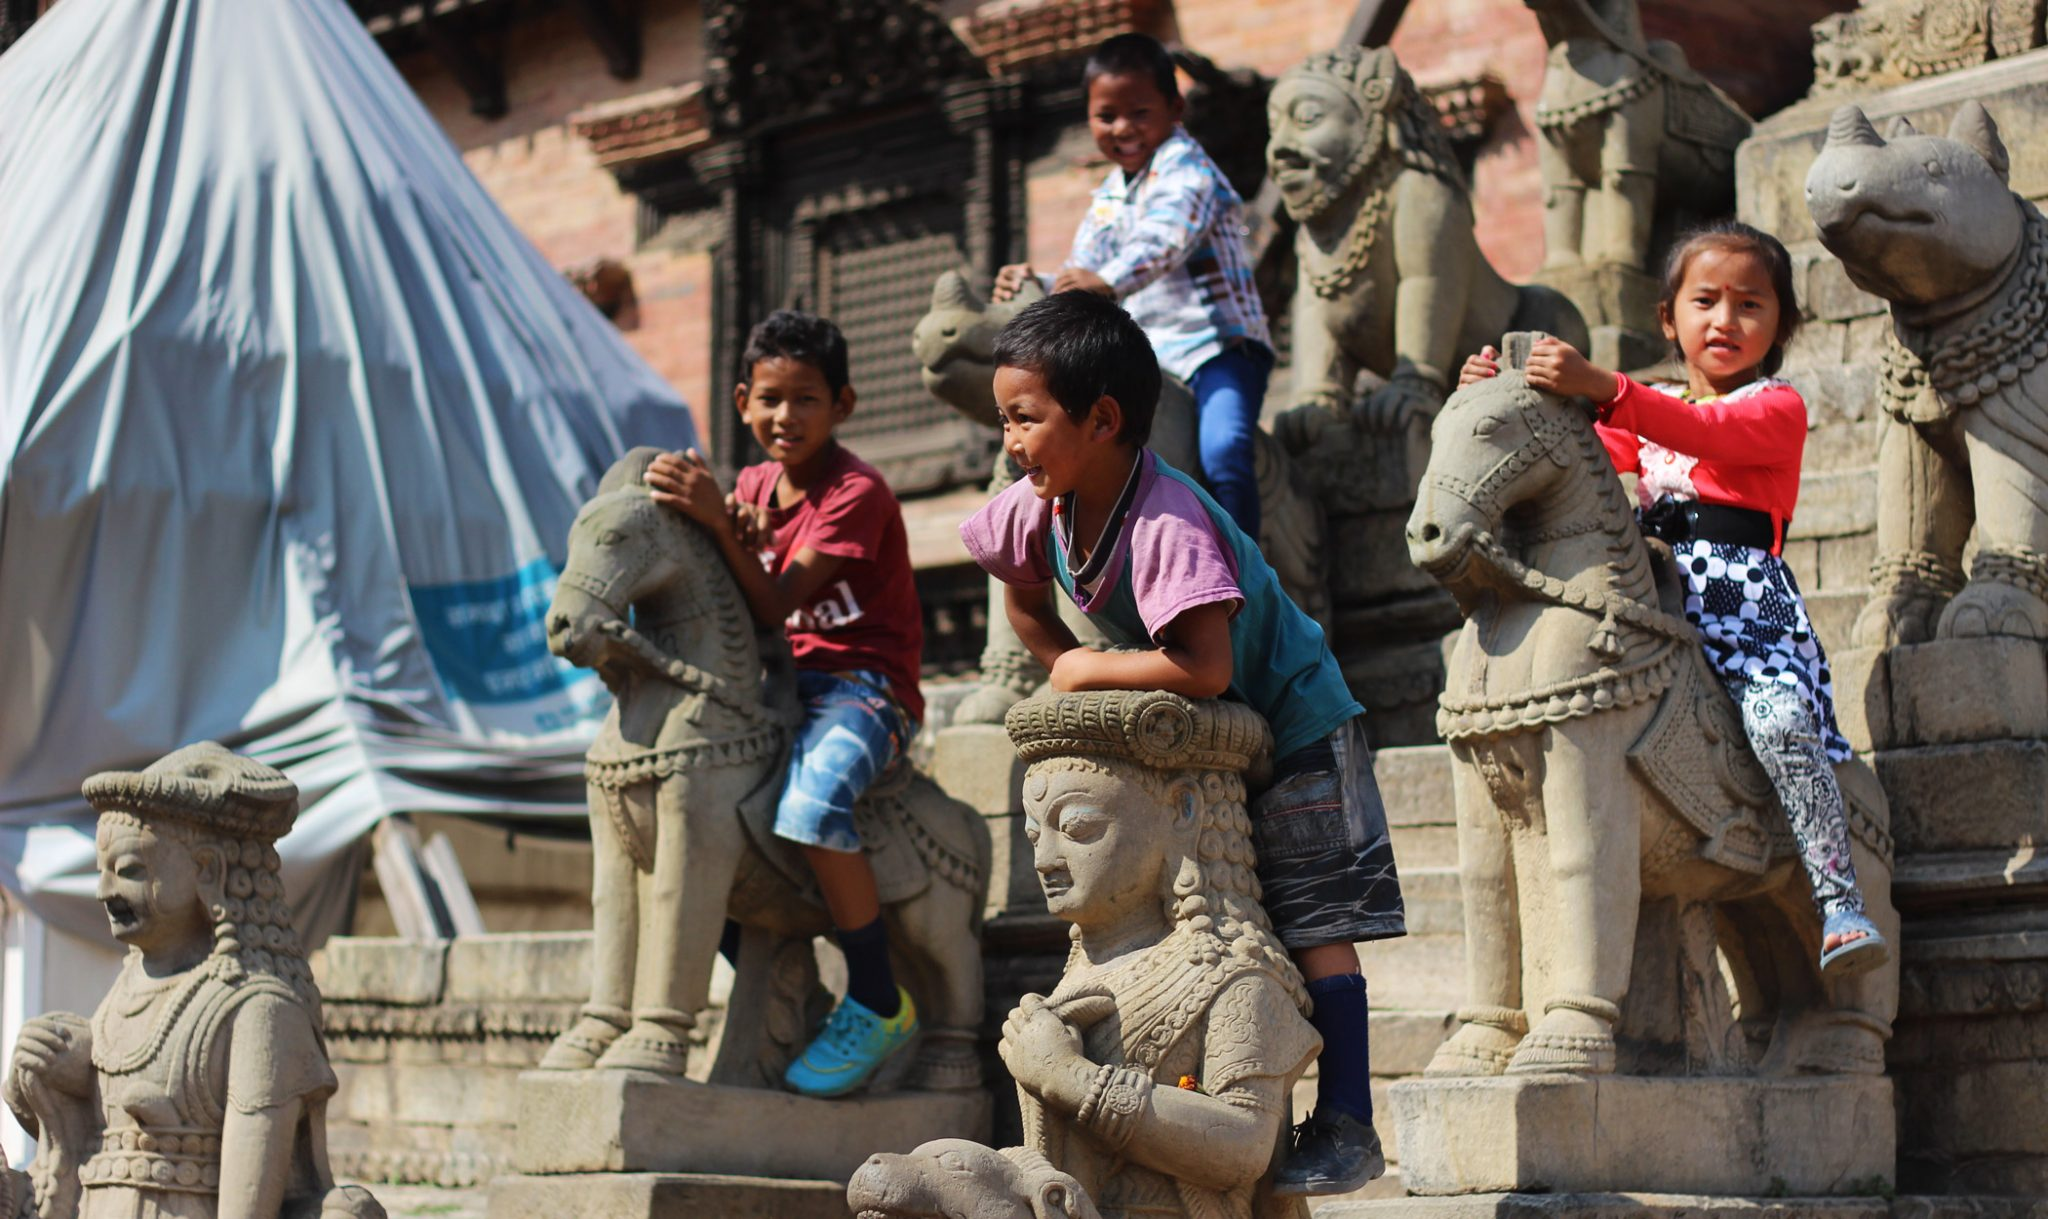 Children play on the stone animals guarding the entrance to the Siddhi Laxmi temple, a 17th-century temple which escaped relatively unscathed from the earthquake.